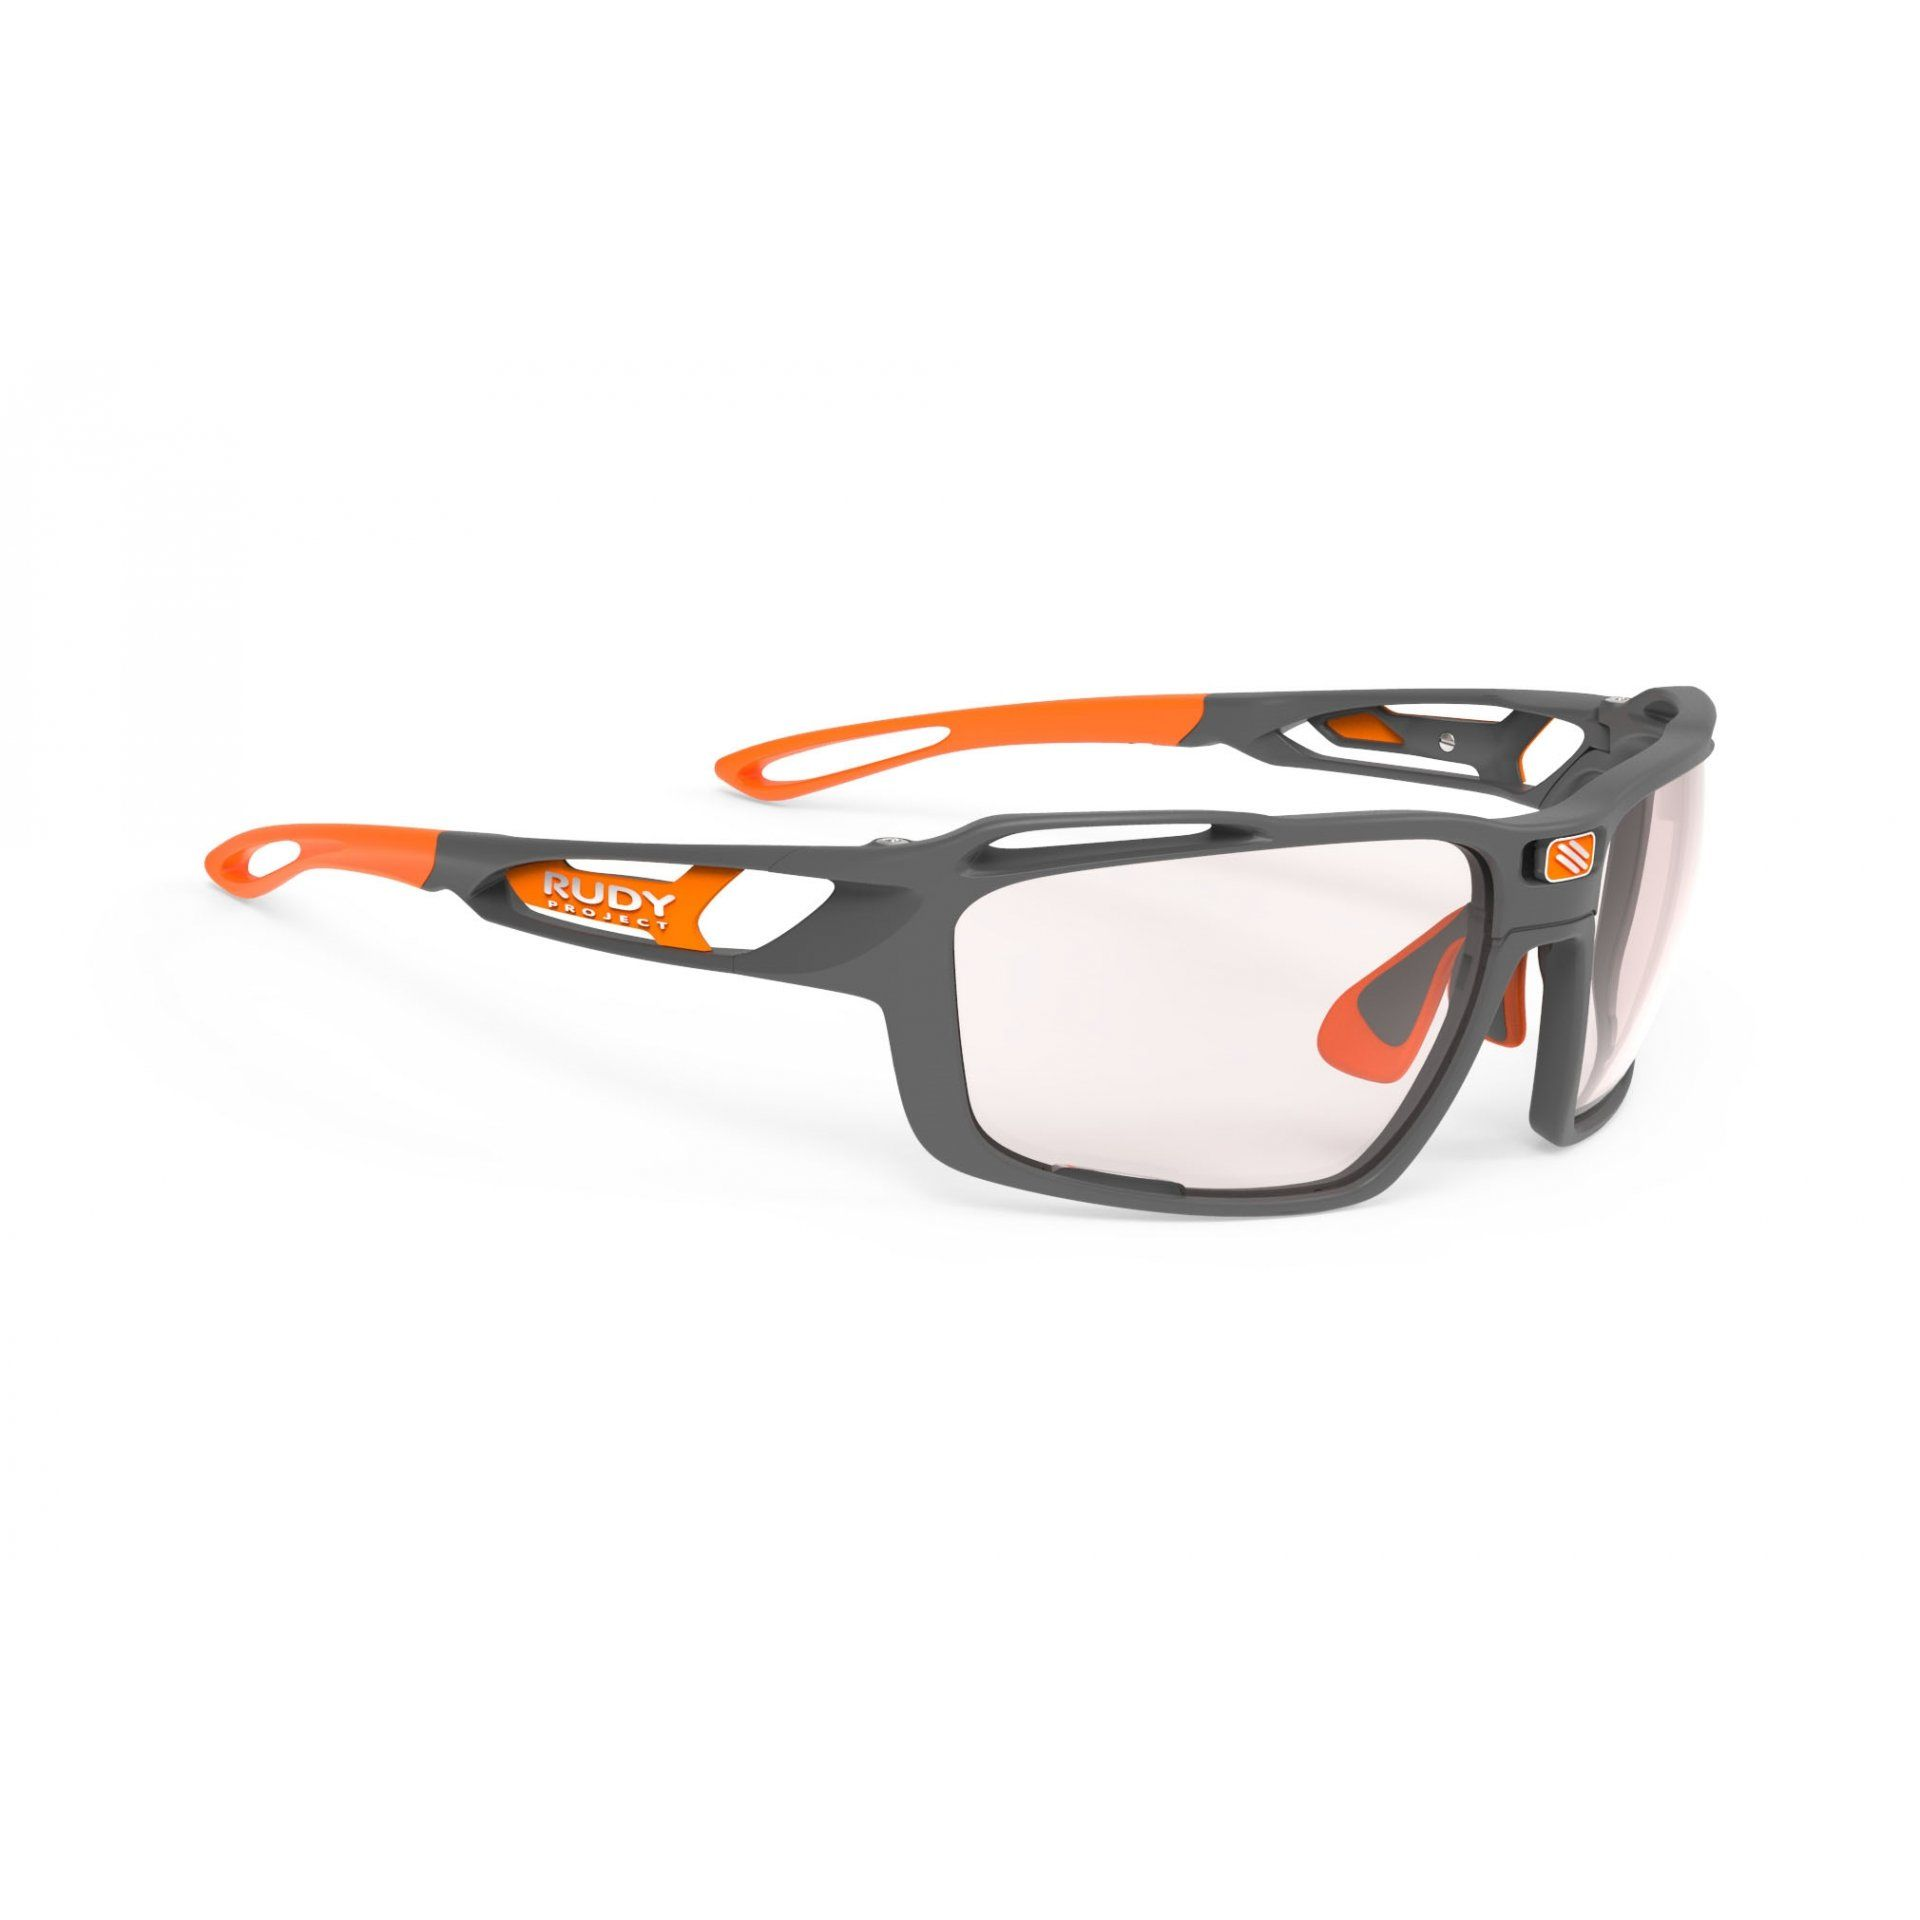 OKULARY RUDY PROJECT SINTRYX PYOMBO MATTE+IMPACTX PHOTOCHROMIC 2 RED 1